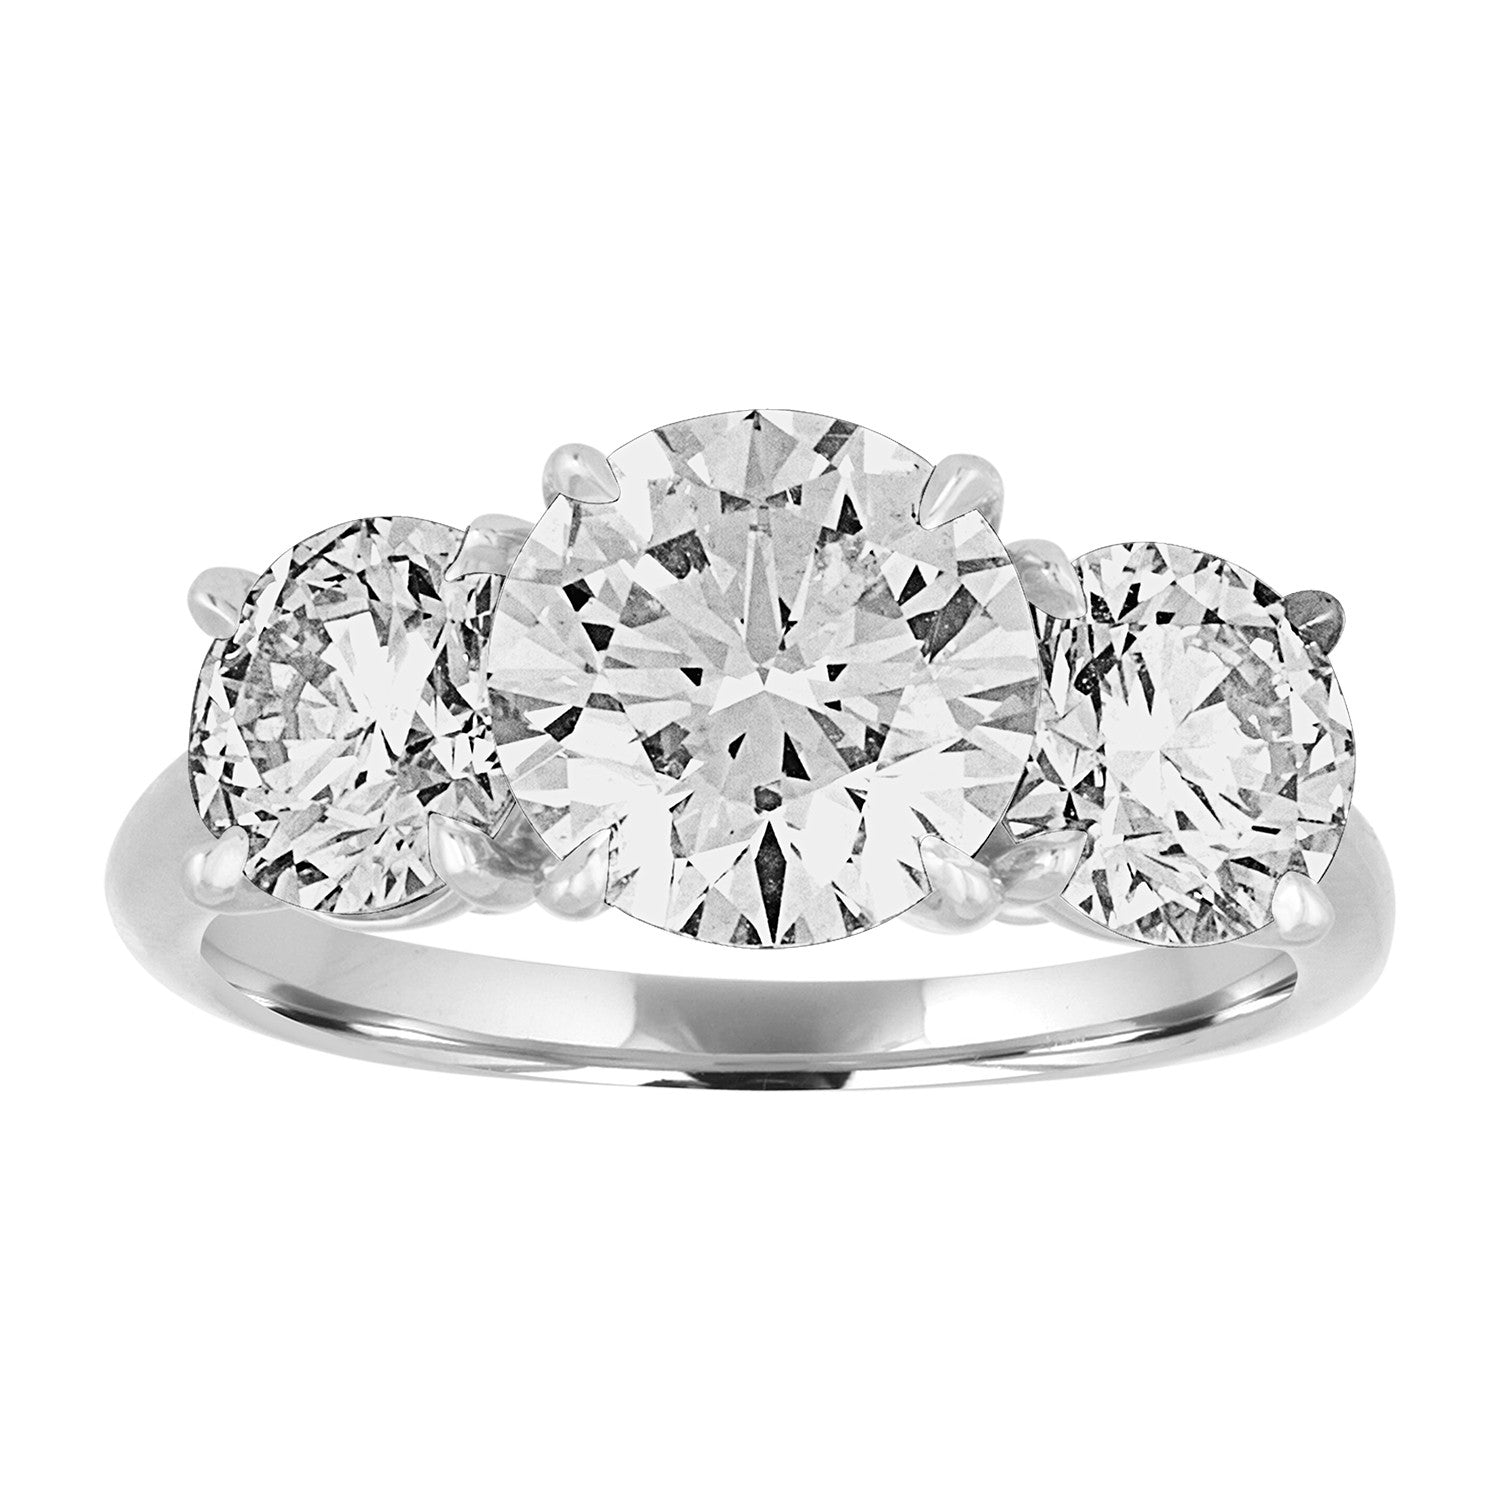 img product harry engagement round diamond shop winston rings edited upscale ring subsampling carat scale crop false brilliant